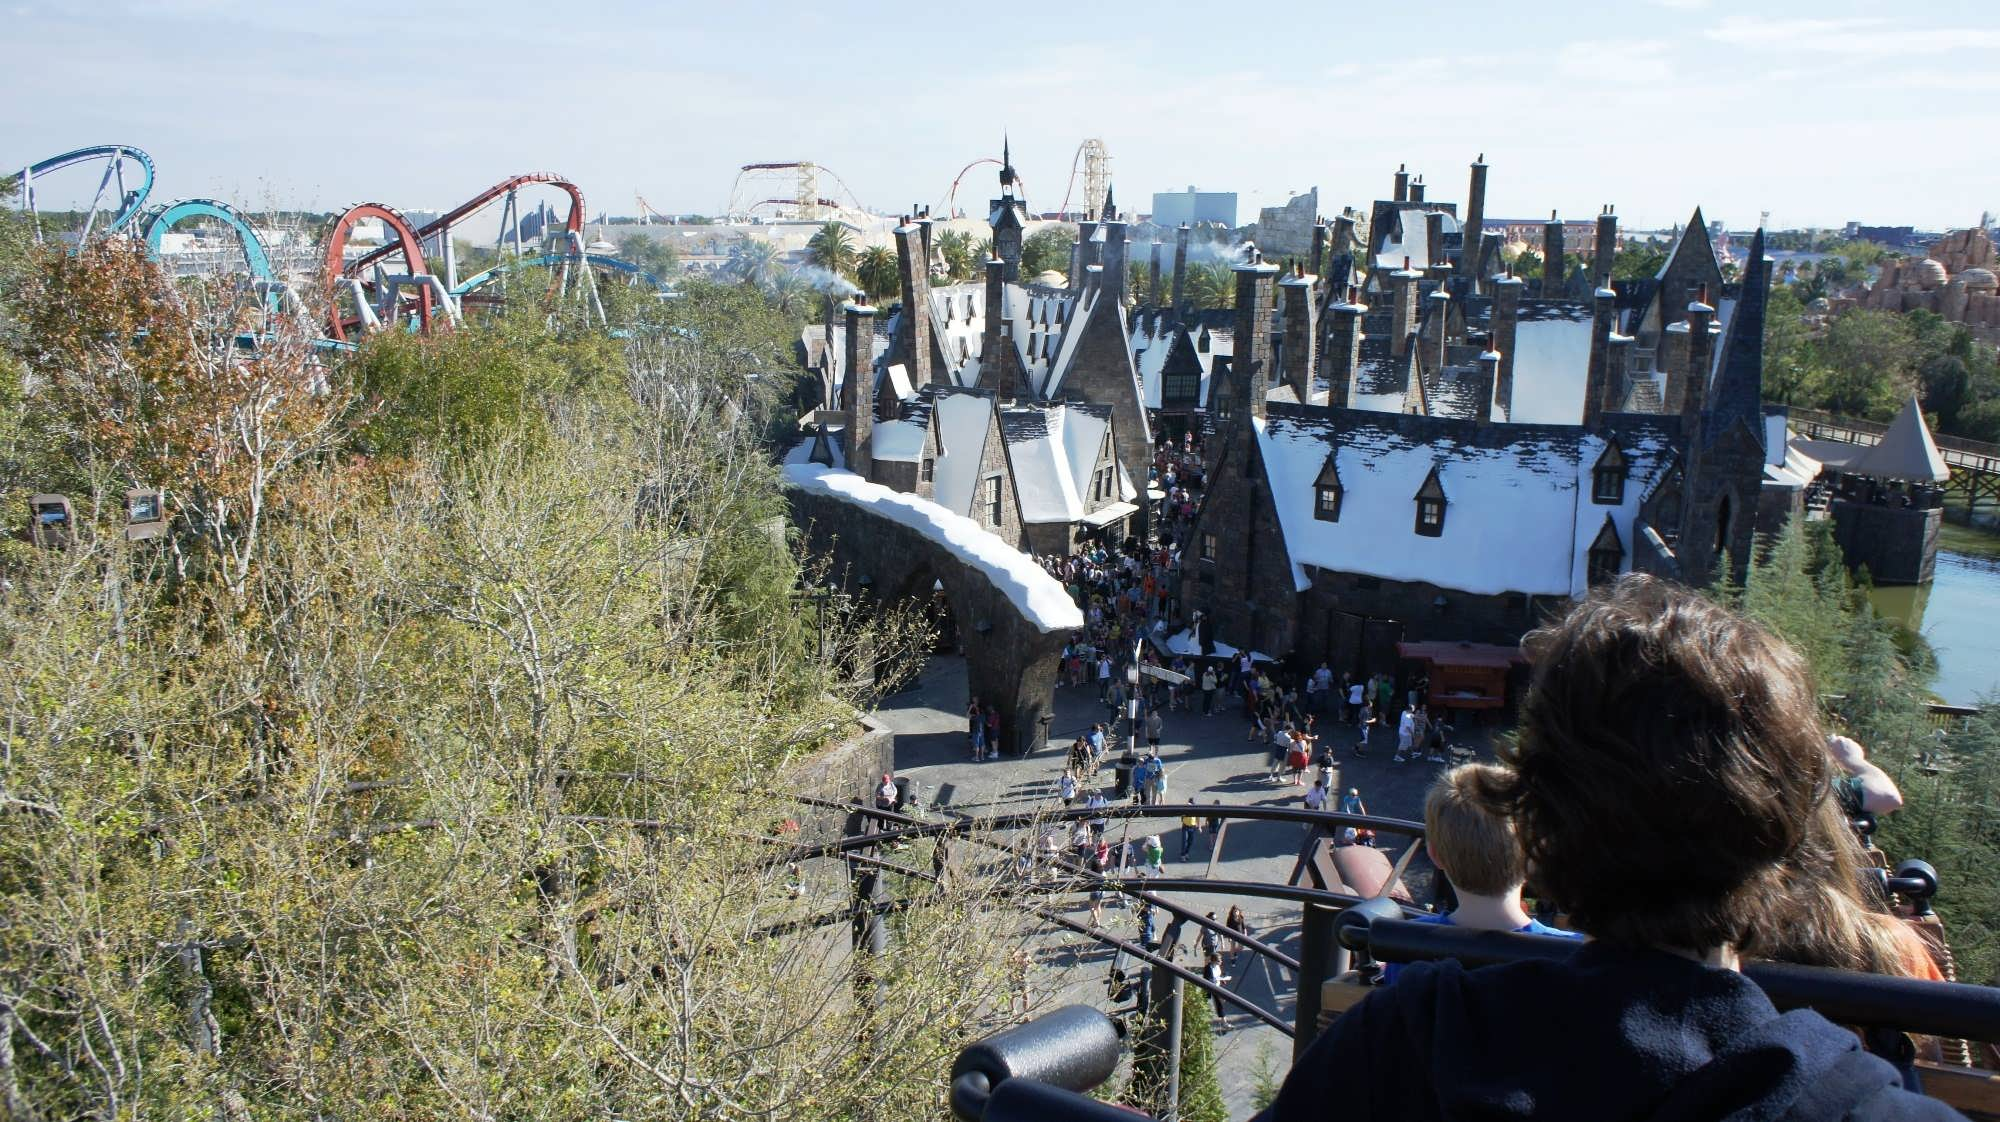 View from the top of Flight of the Hippogriff.